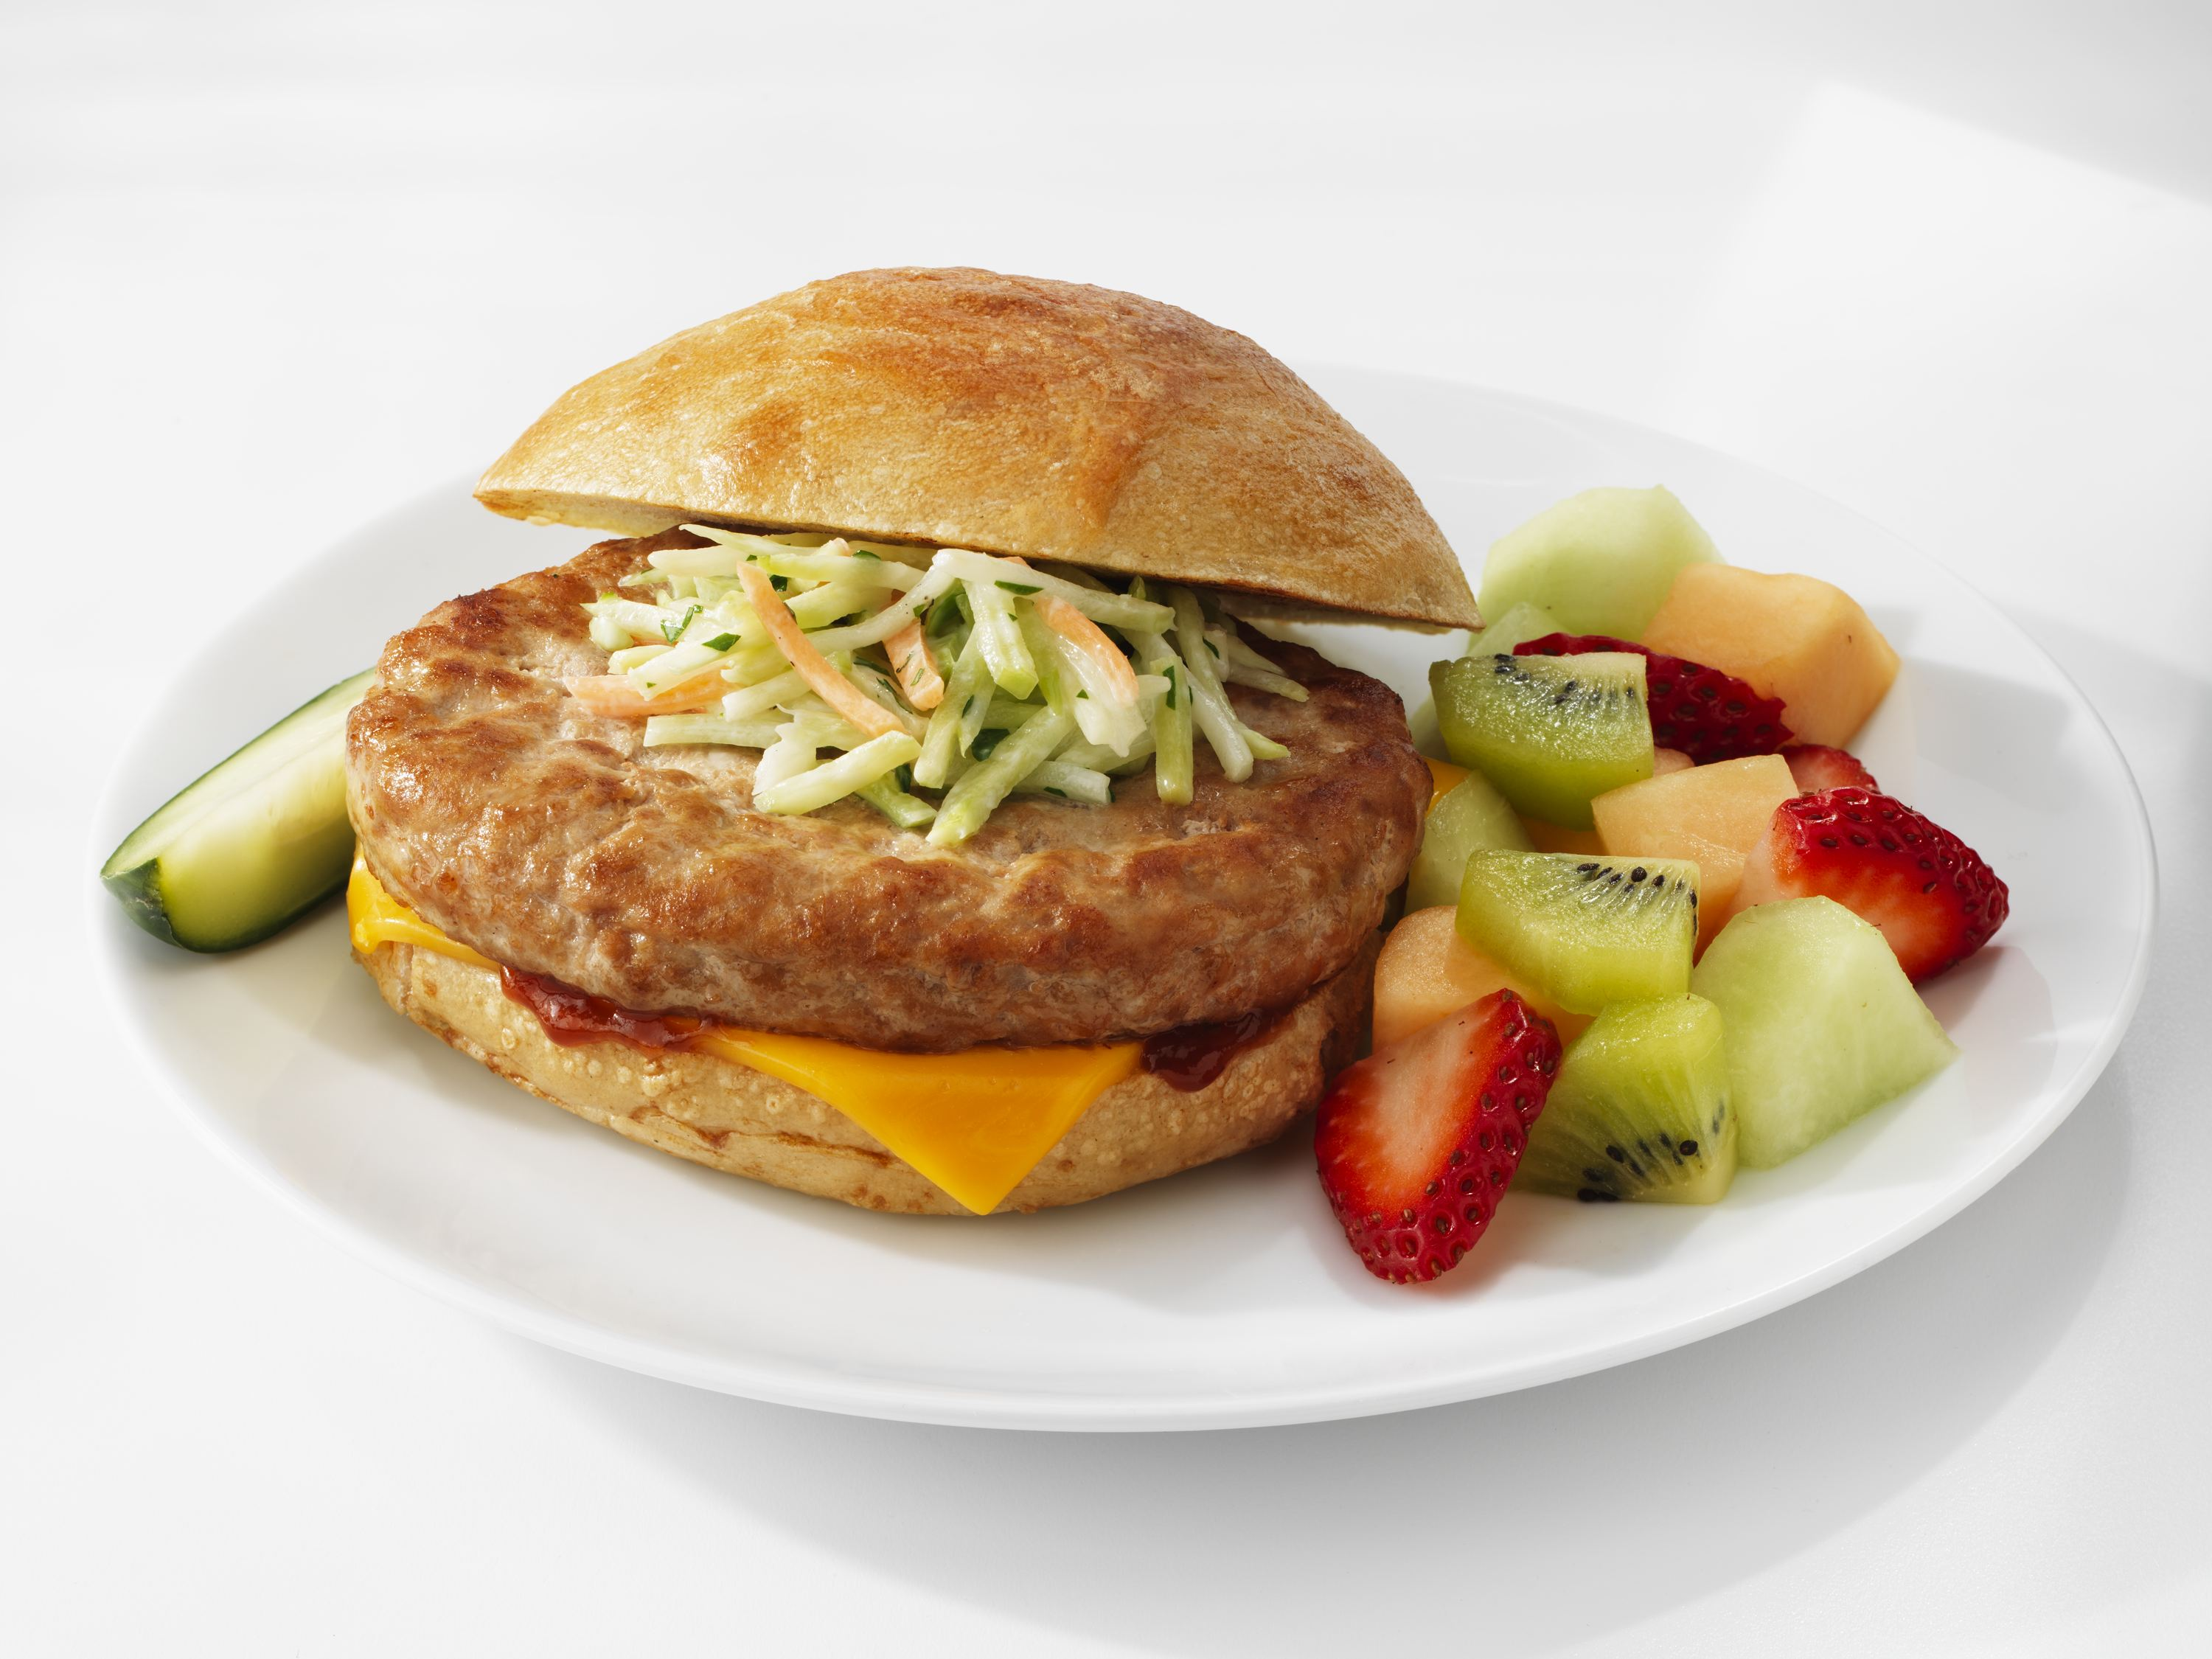 Savory White Turkey Patty - 7.0oz